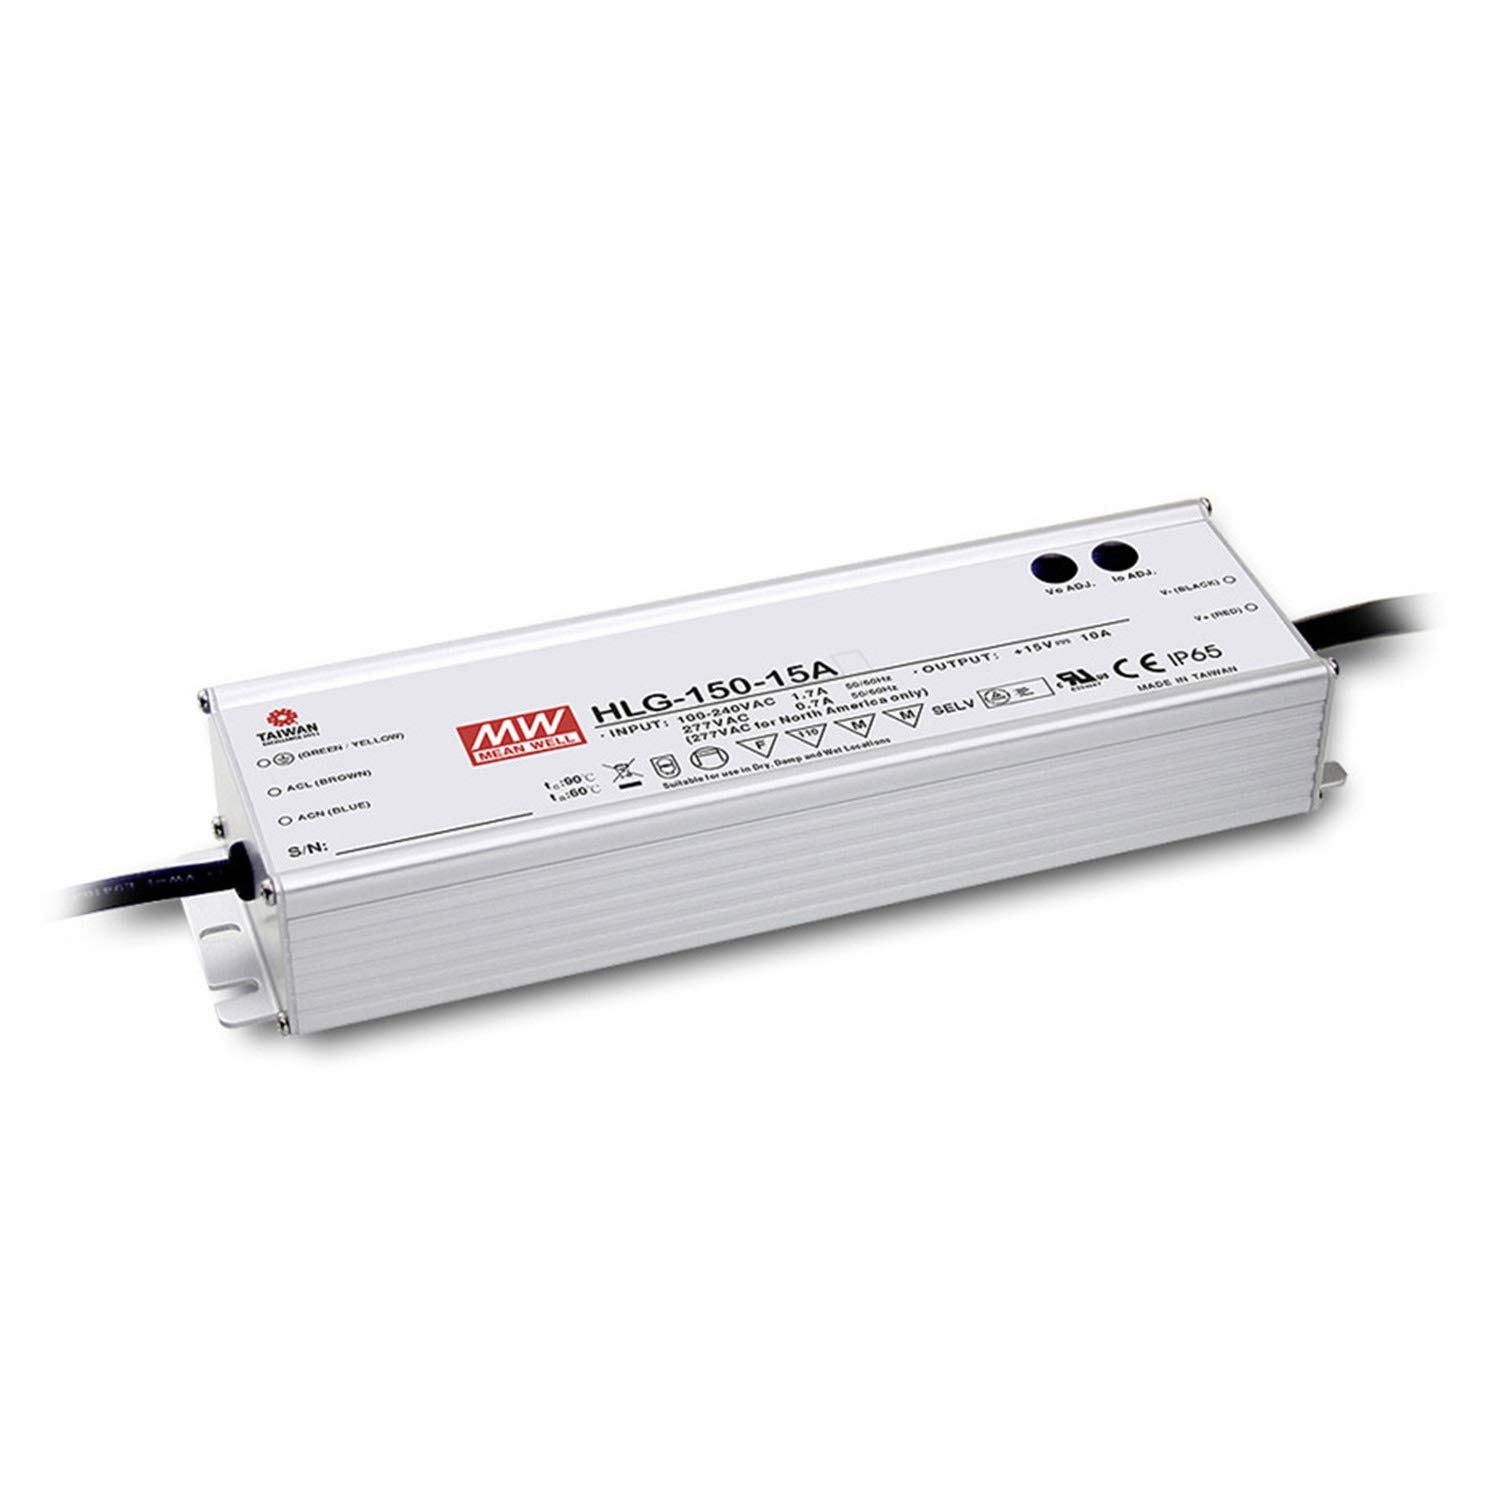 LED Driver Single Output Switching Power Supply 150 Watt 42V @ 3.60A A Model, 150W